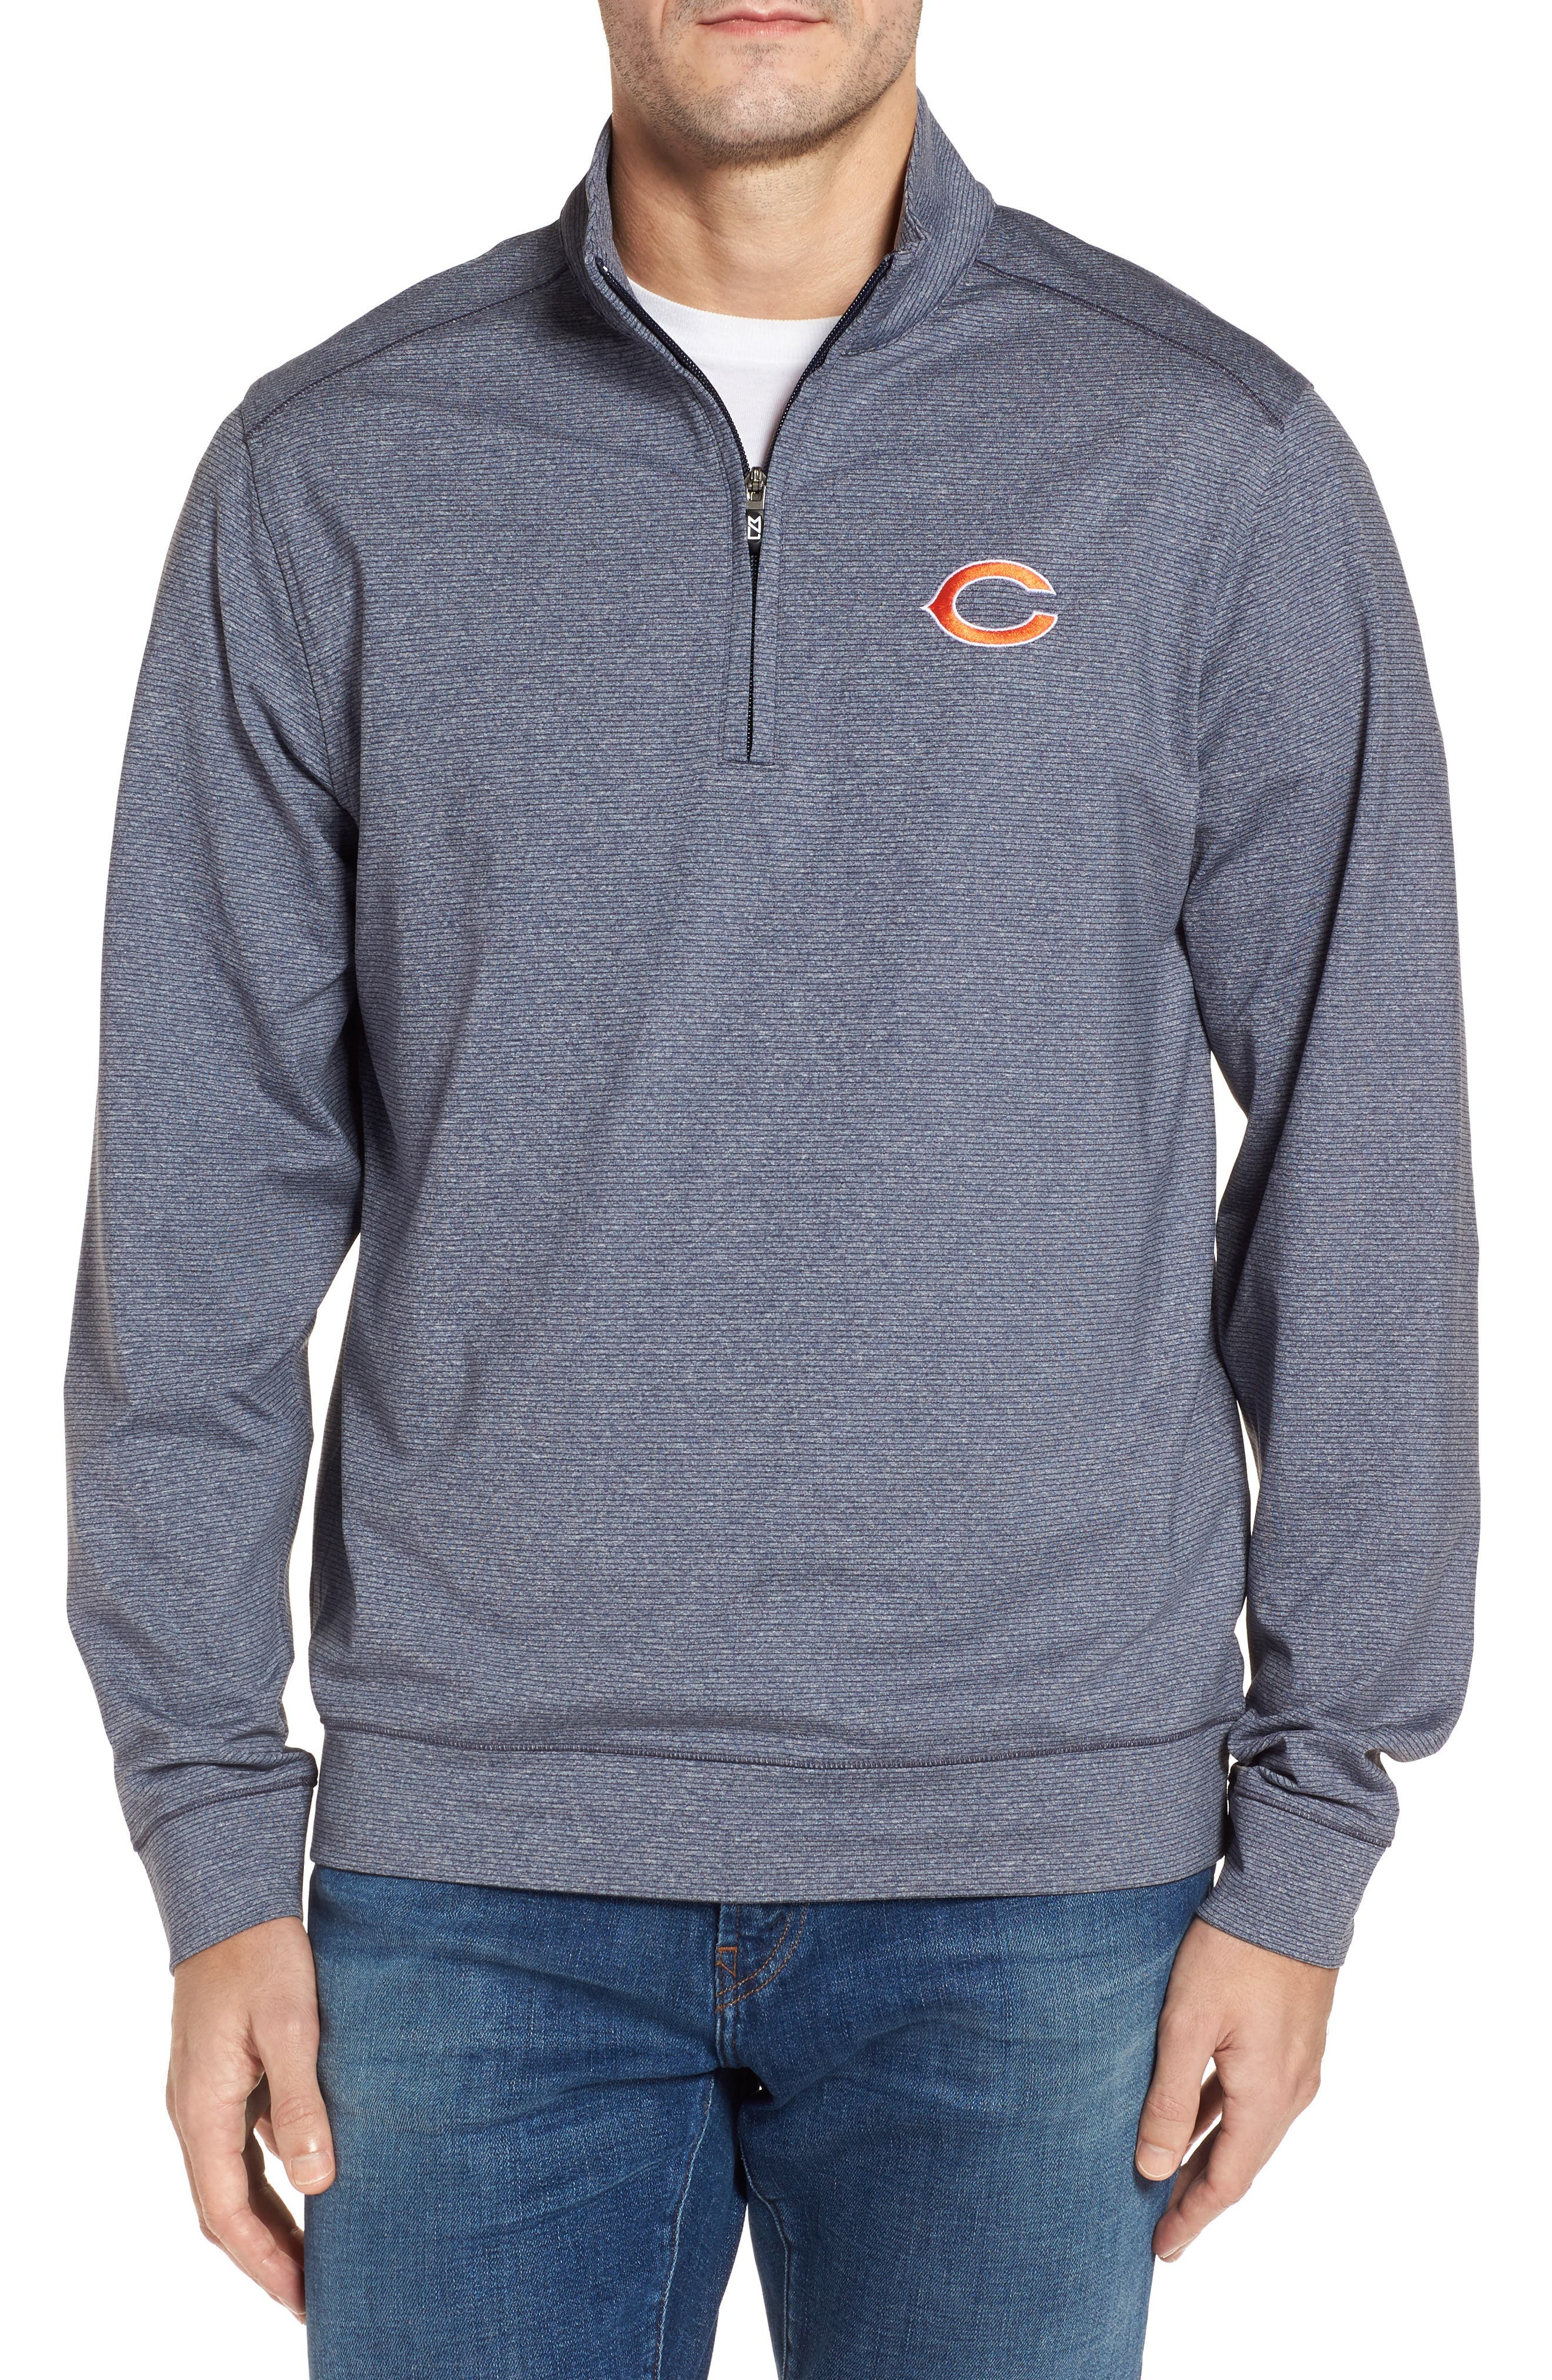 Cutter & Buck Shoreline - Chicago Bears Half Zip Pullover